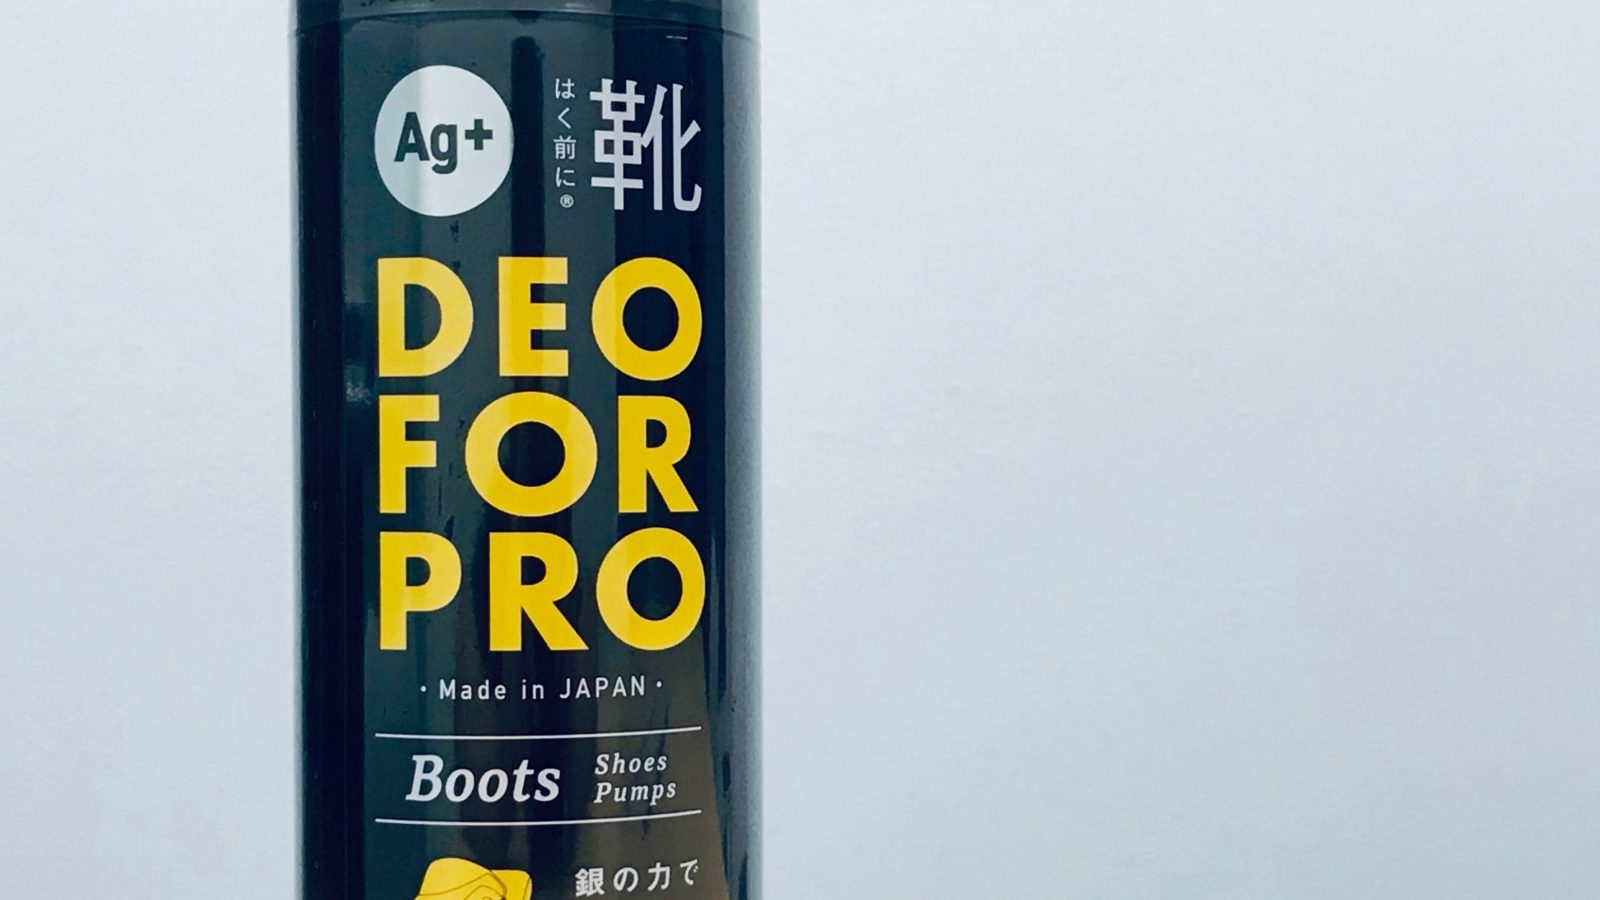 DEO FOR PRO